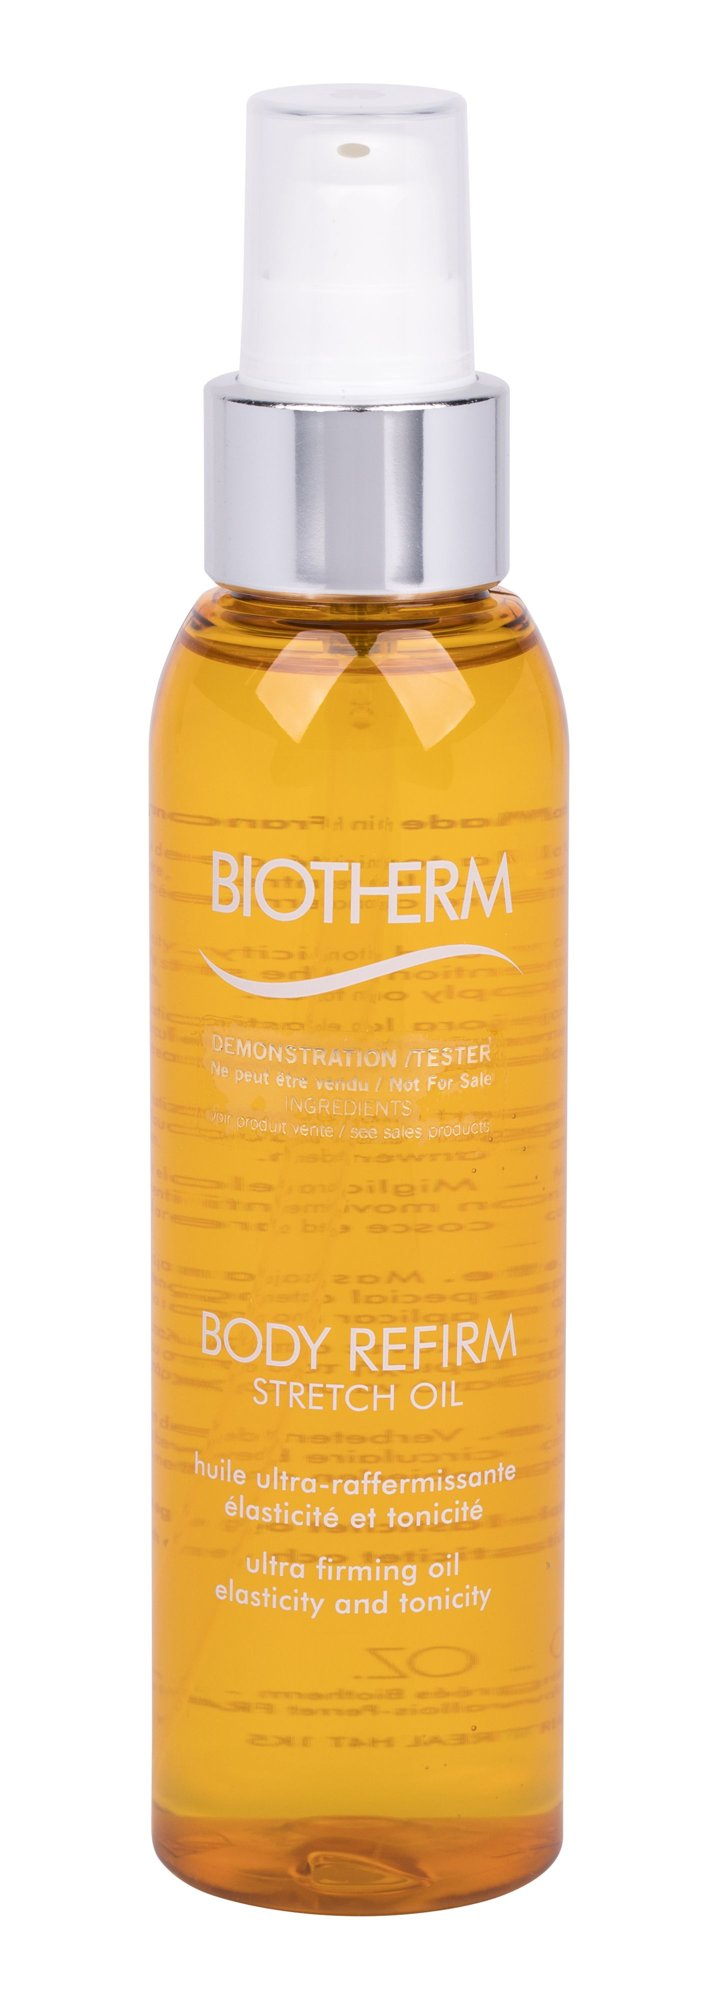 Biotherm Body Refirm Body Oil 125ml